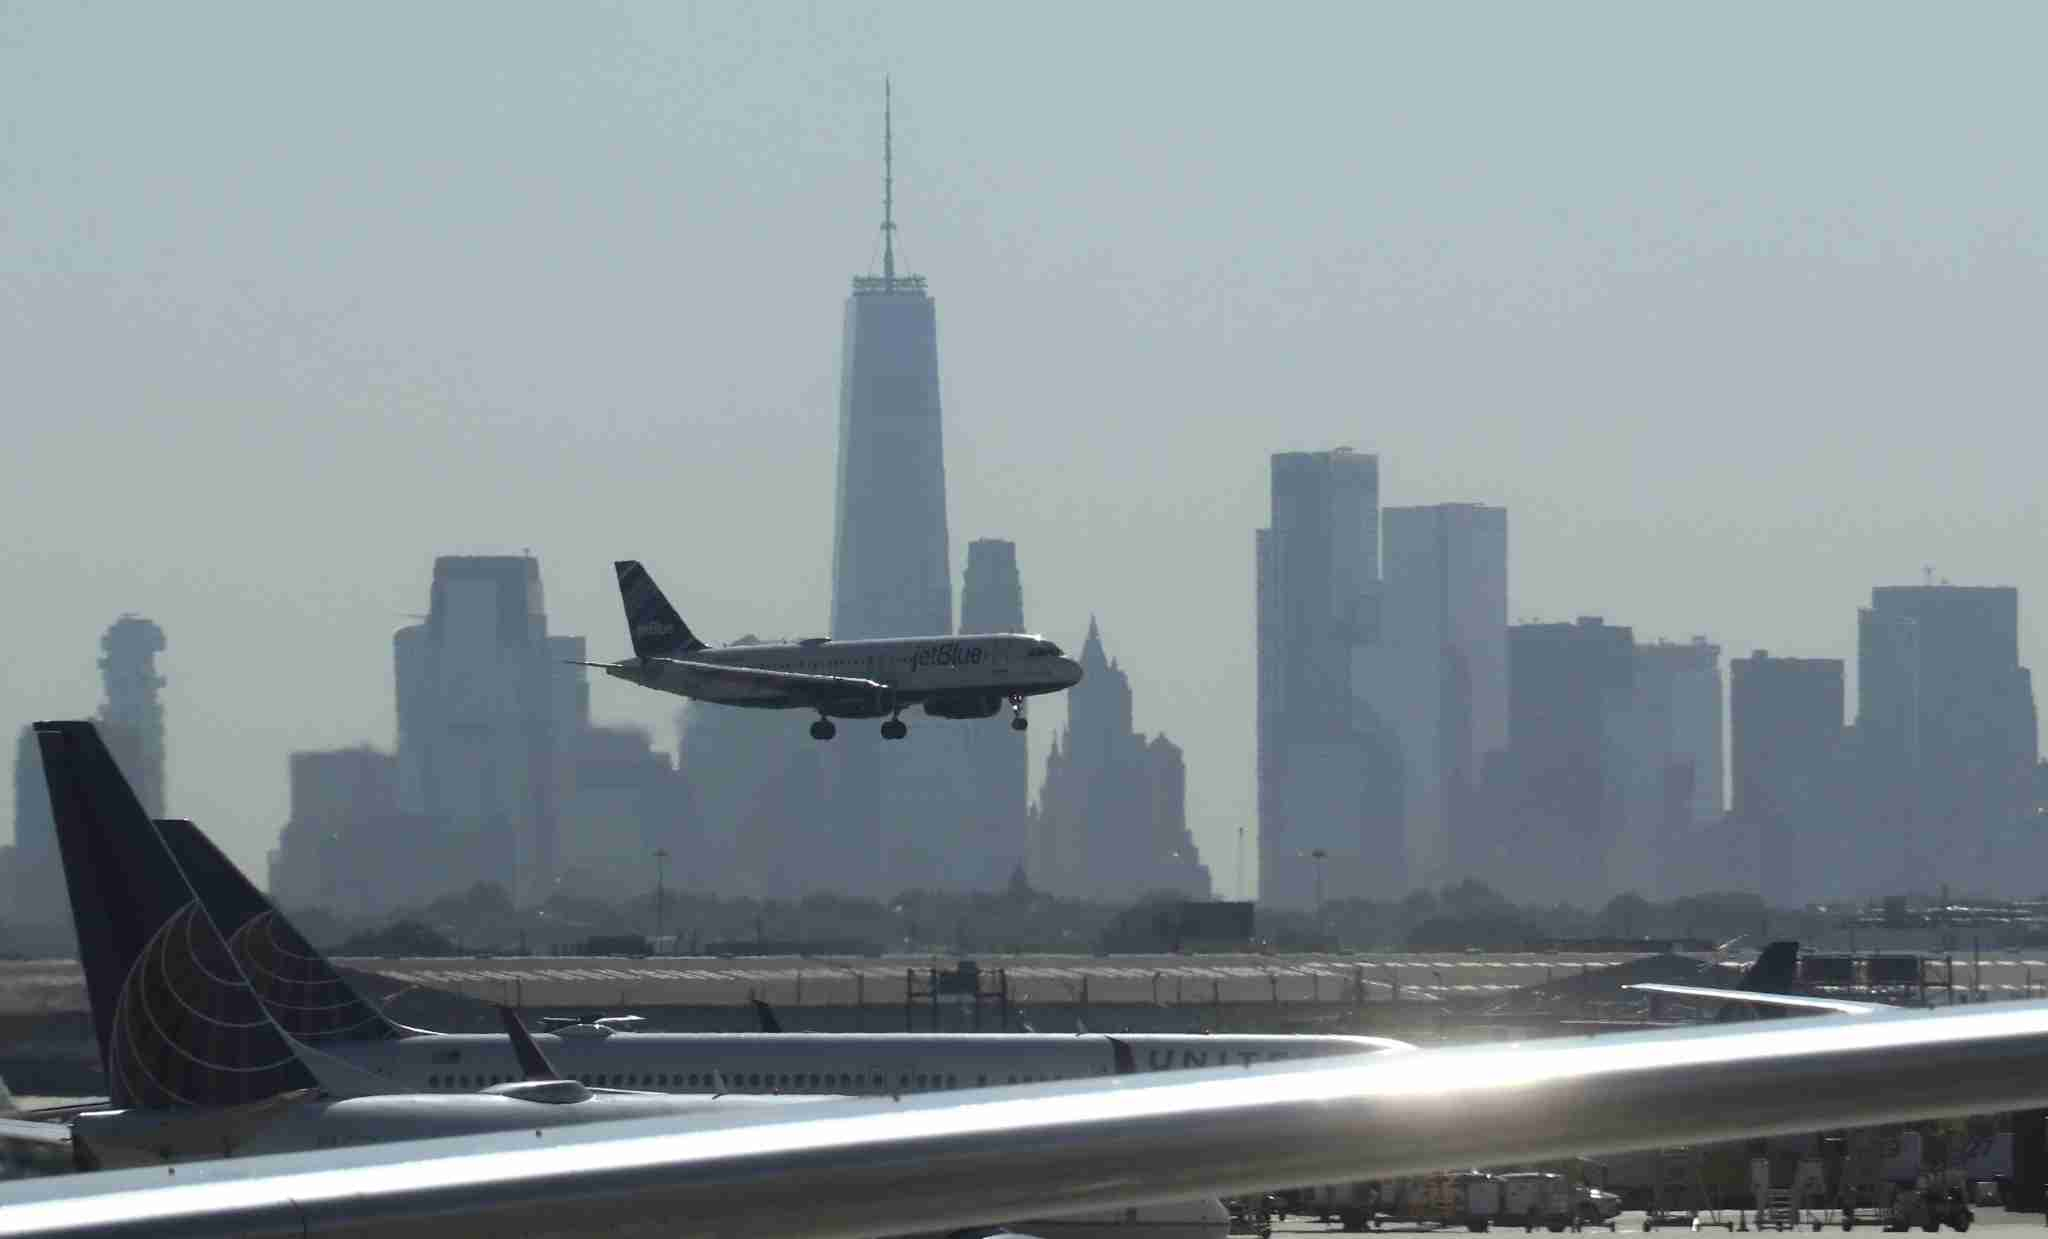 NEWARK, NJ - JUNE 14: A JetBlue airplane lands at Newark Liberty International Airport in front of lower Manhattan and One World Trade Center on June 14, 2018 in Newark, New Jersey. (Photo by Gary Hershorn/Getty Images)